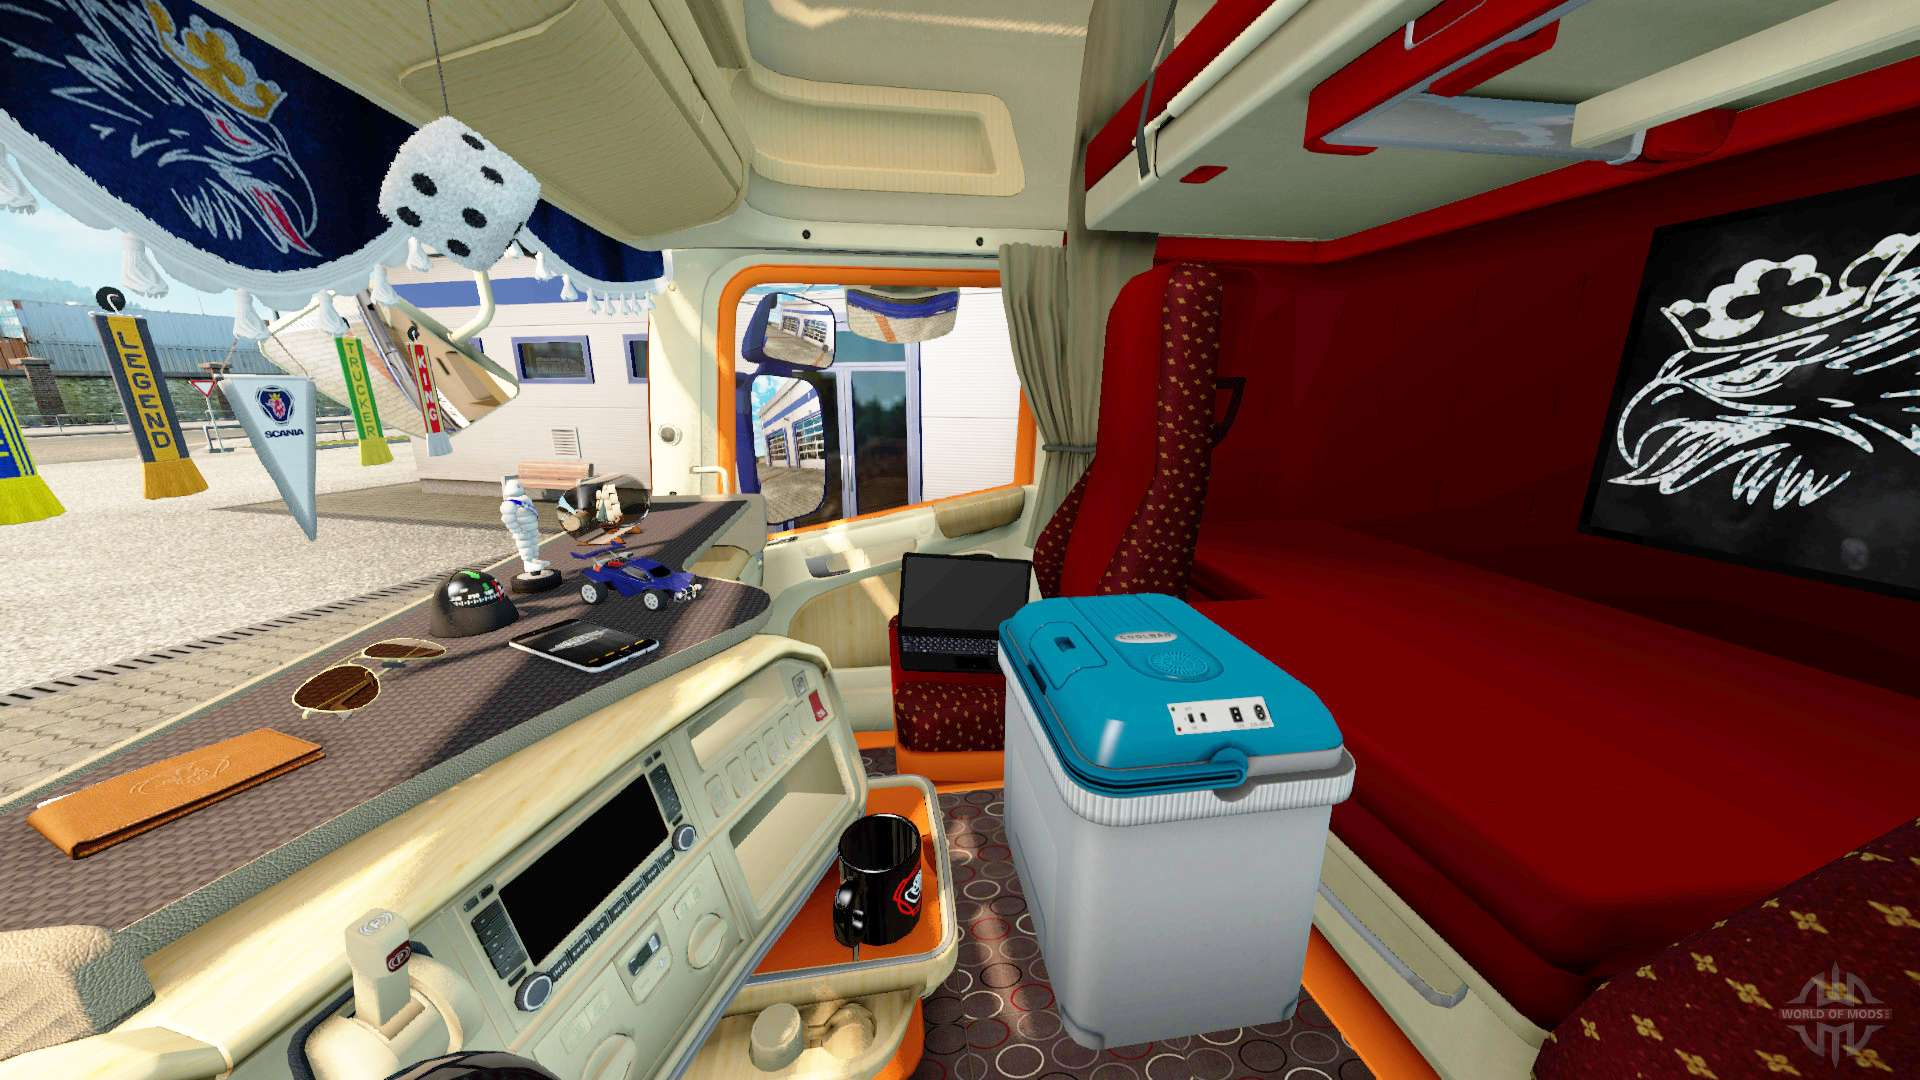 Interior for scania truck for euro truck simulator 2 for Interior design simulator